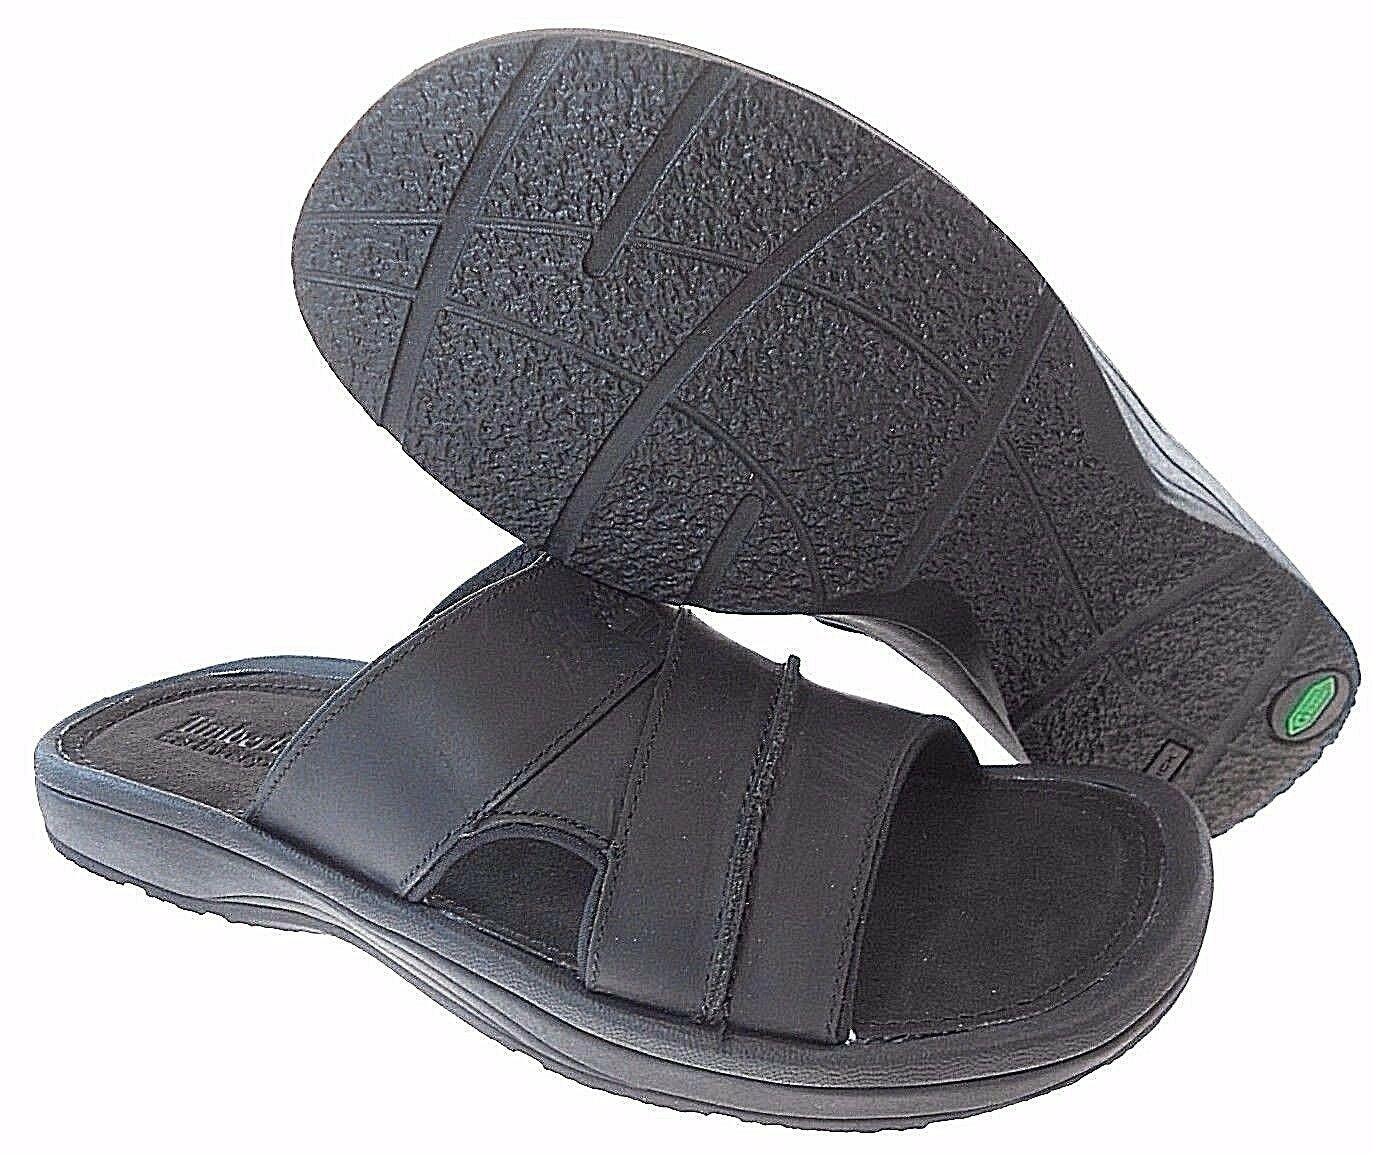 Primary image for TIMBERLAND 3328A MEN'S BLACK LEATHER SLIDE SANDALS sz 7, 8